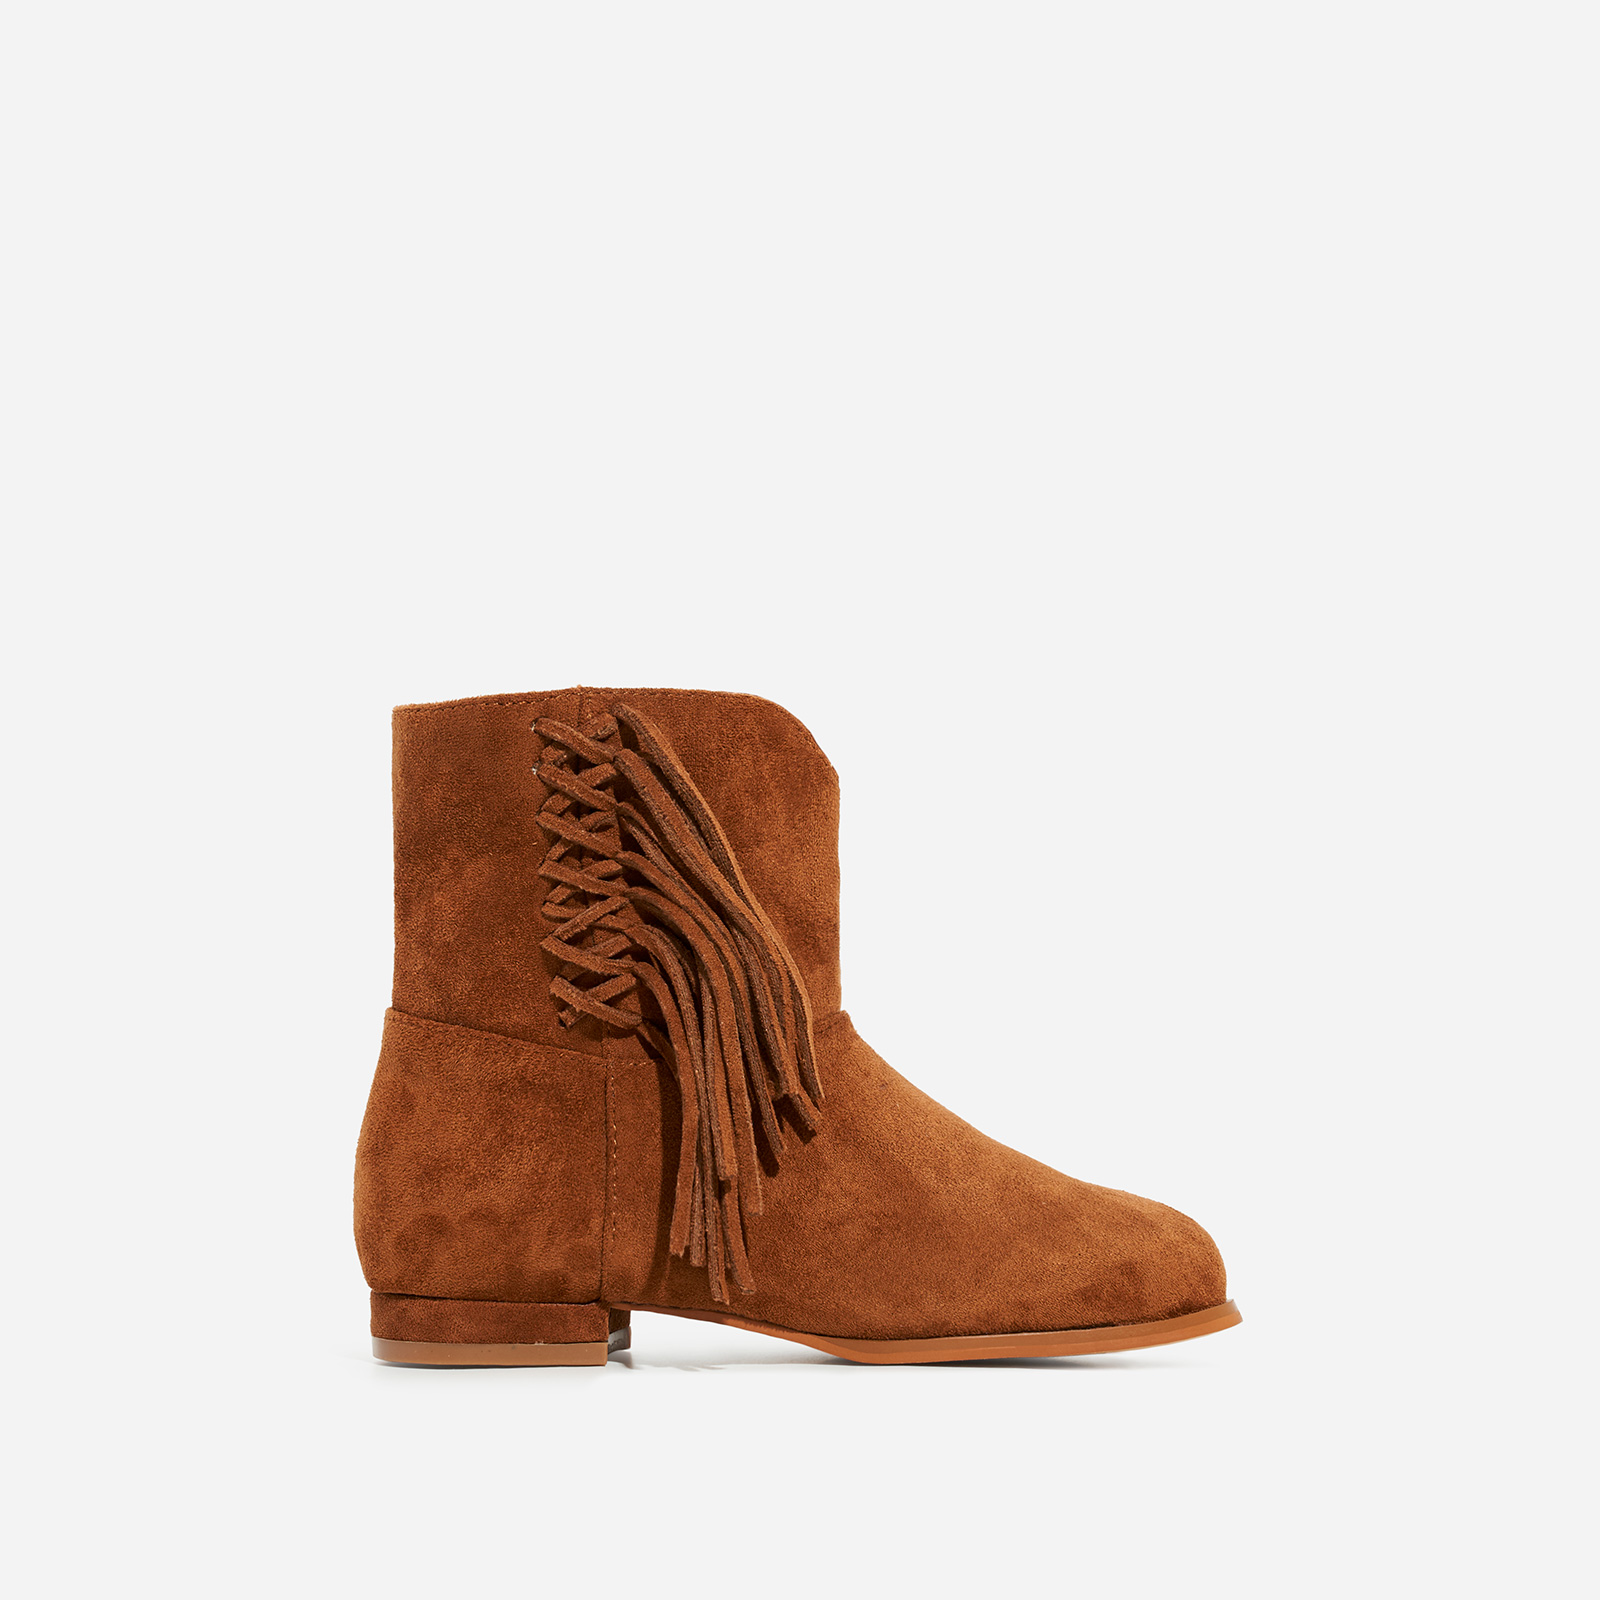 Sweetheart Girl's Tassel Detail Ankle Western Boot I Tan Faux Suede